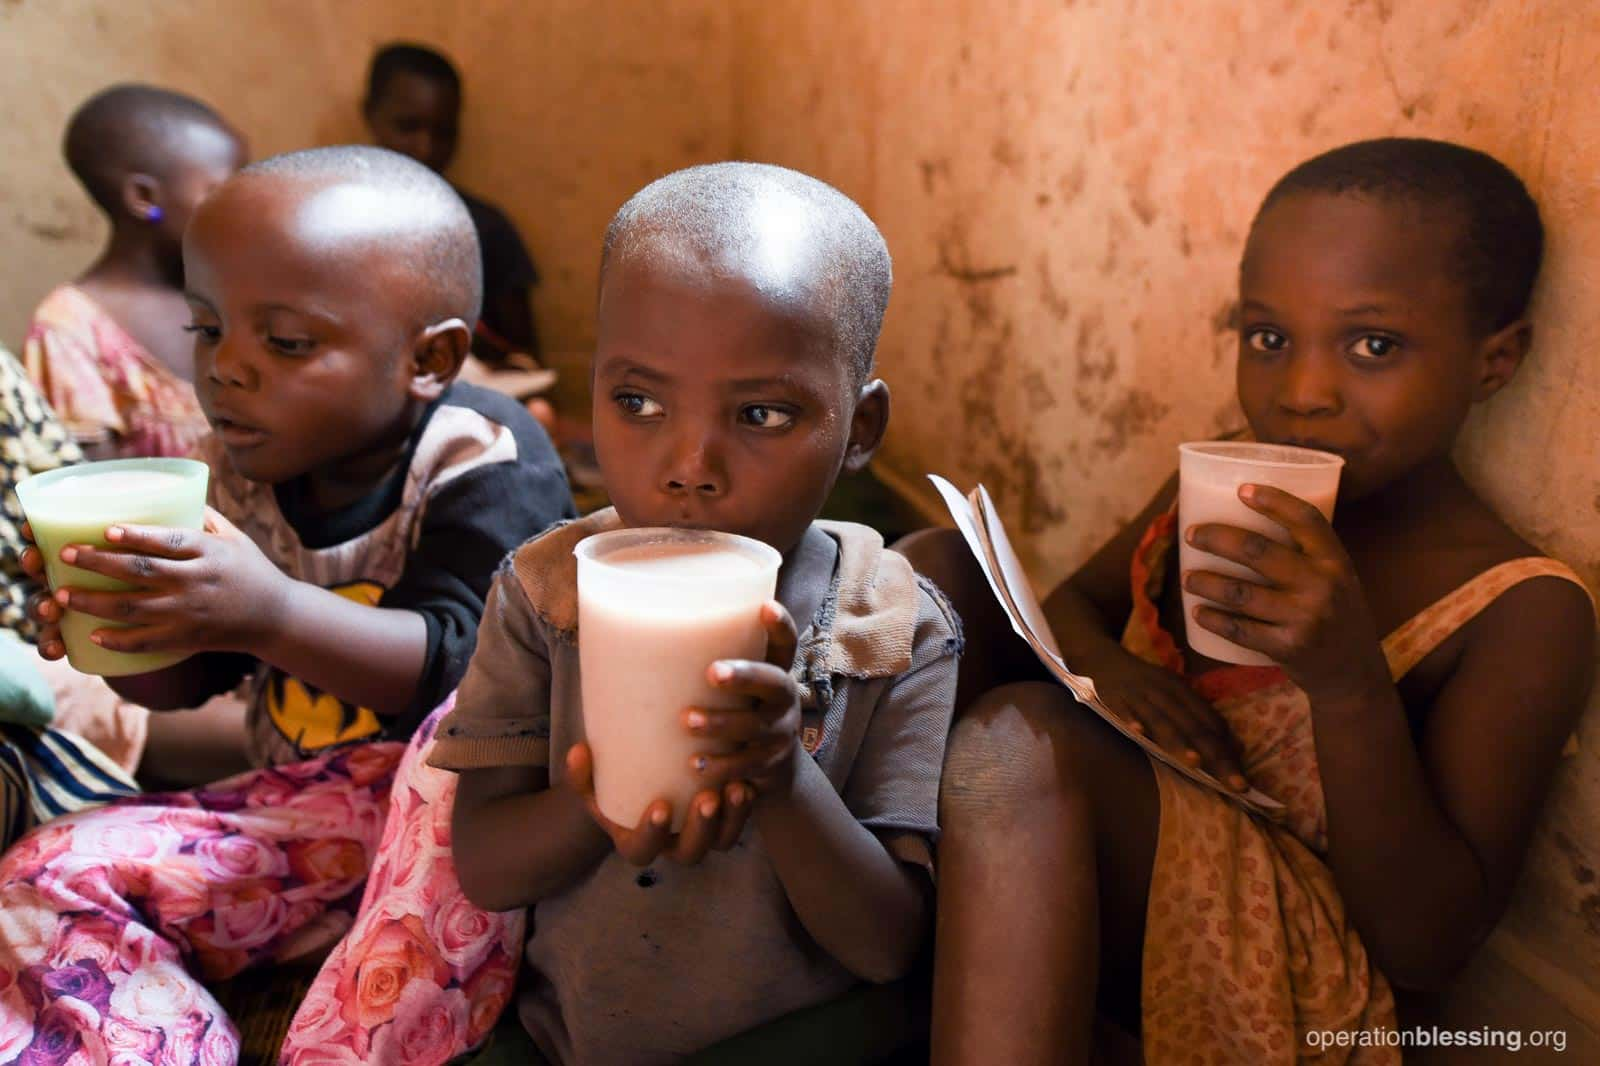 The twins drinking big cups of milk.